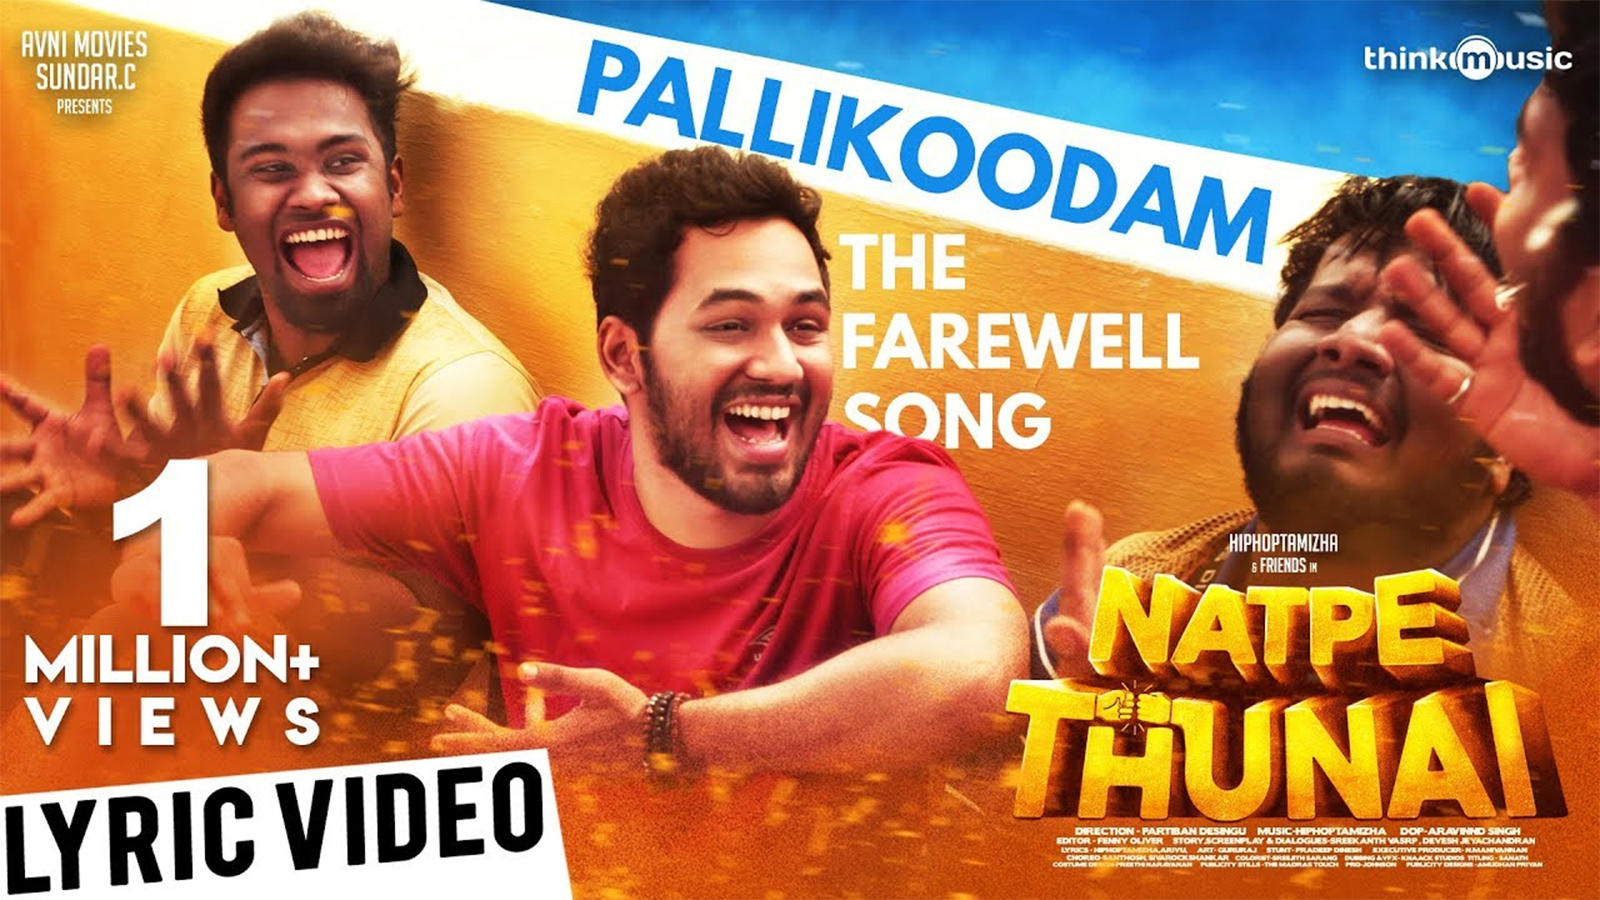 Natpe Thunai | Song - Pallikoodam (Lyrical)